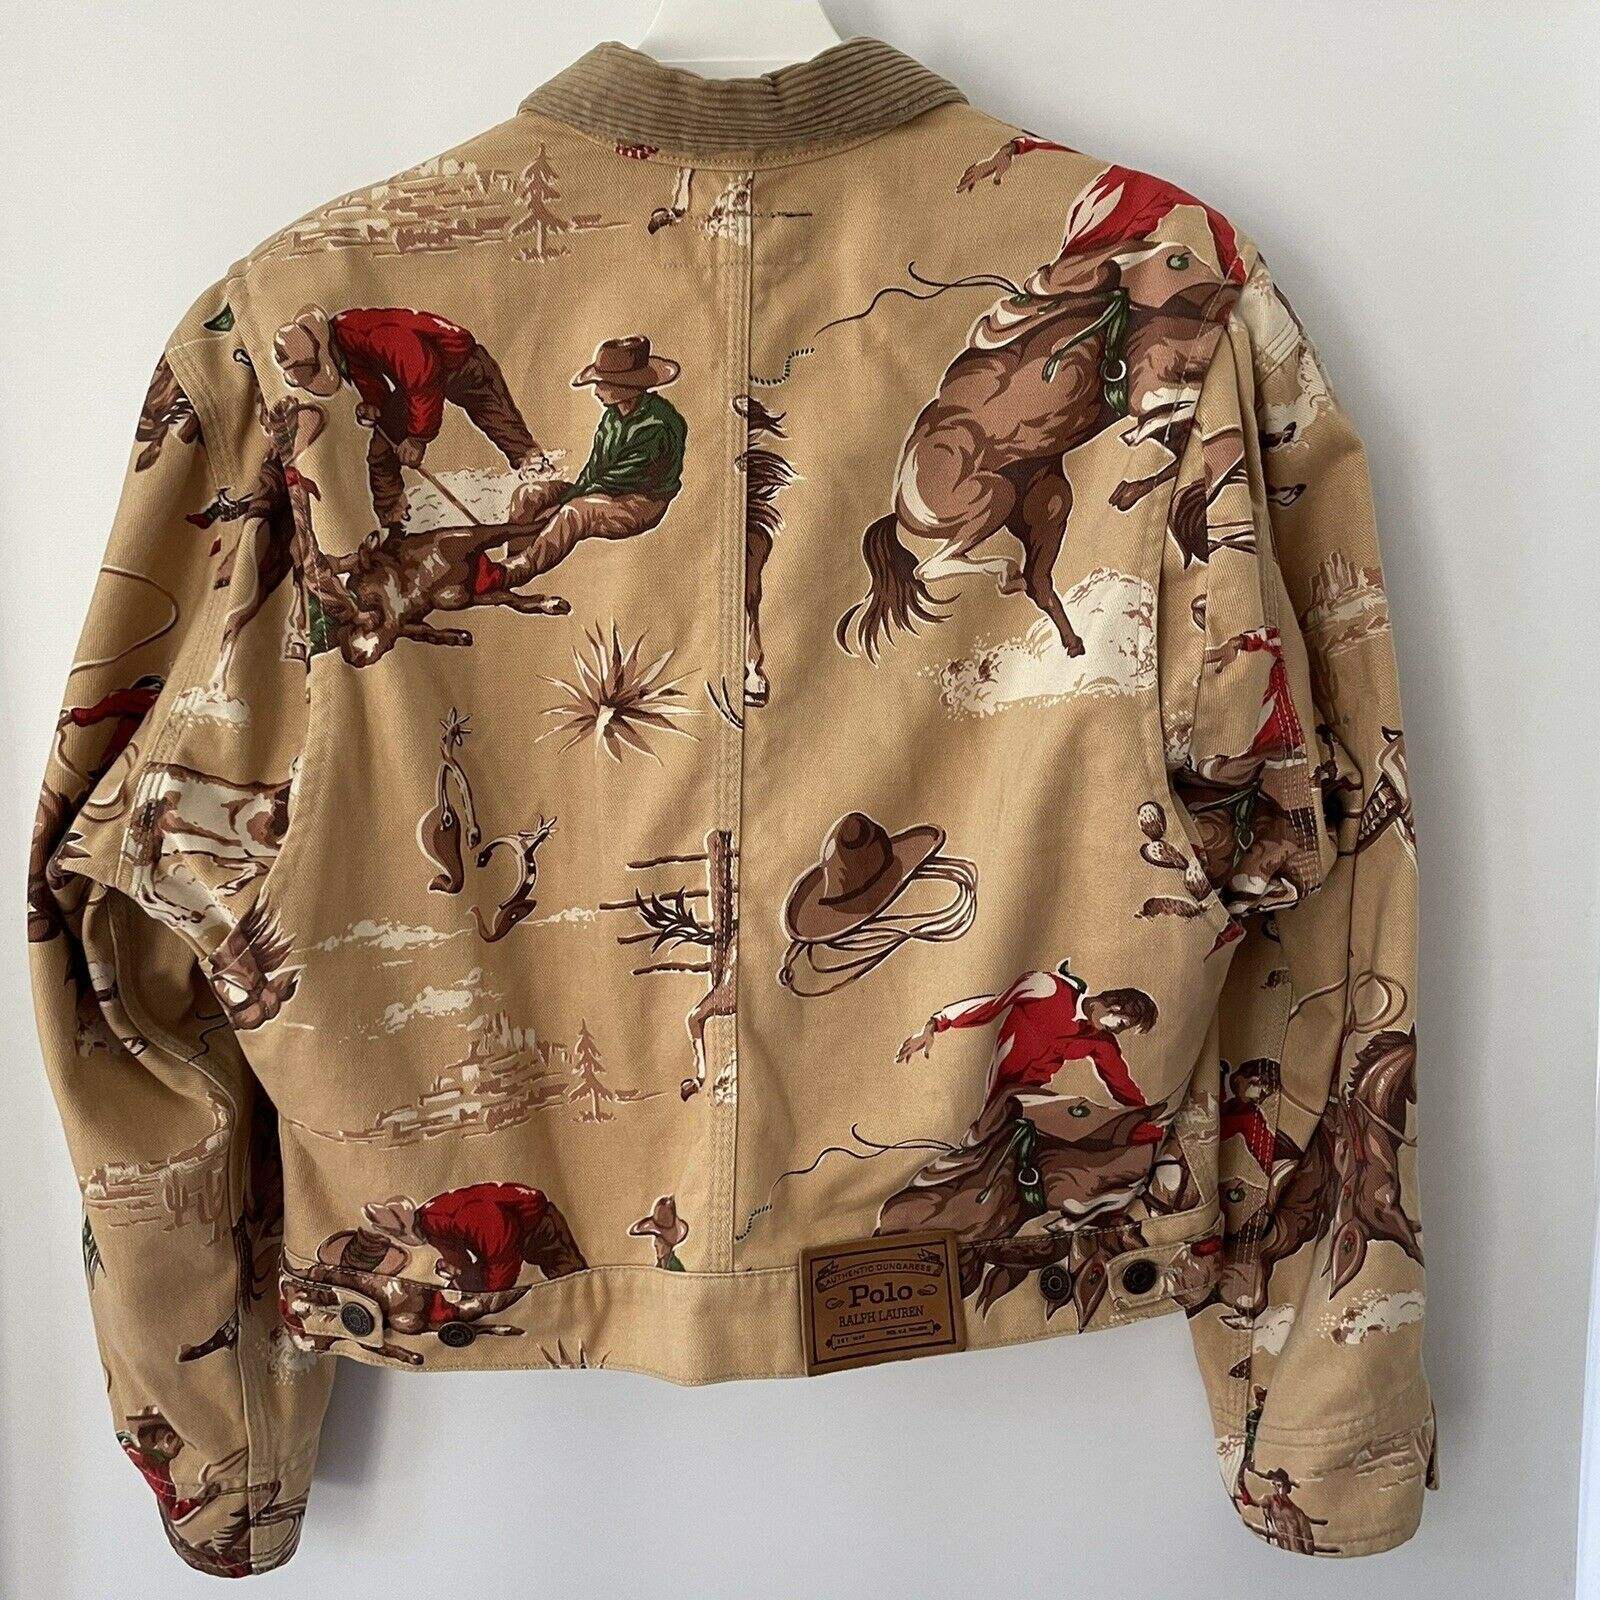 VTG Ralph Lauren Rodeo Country Western Cowboy Wom… - image 2